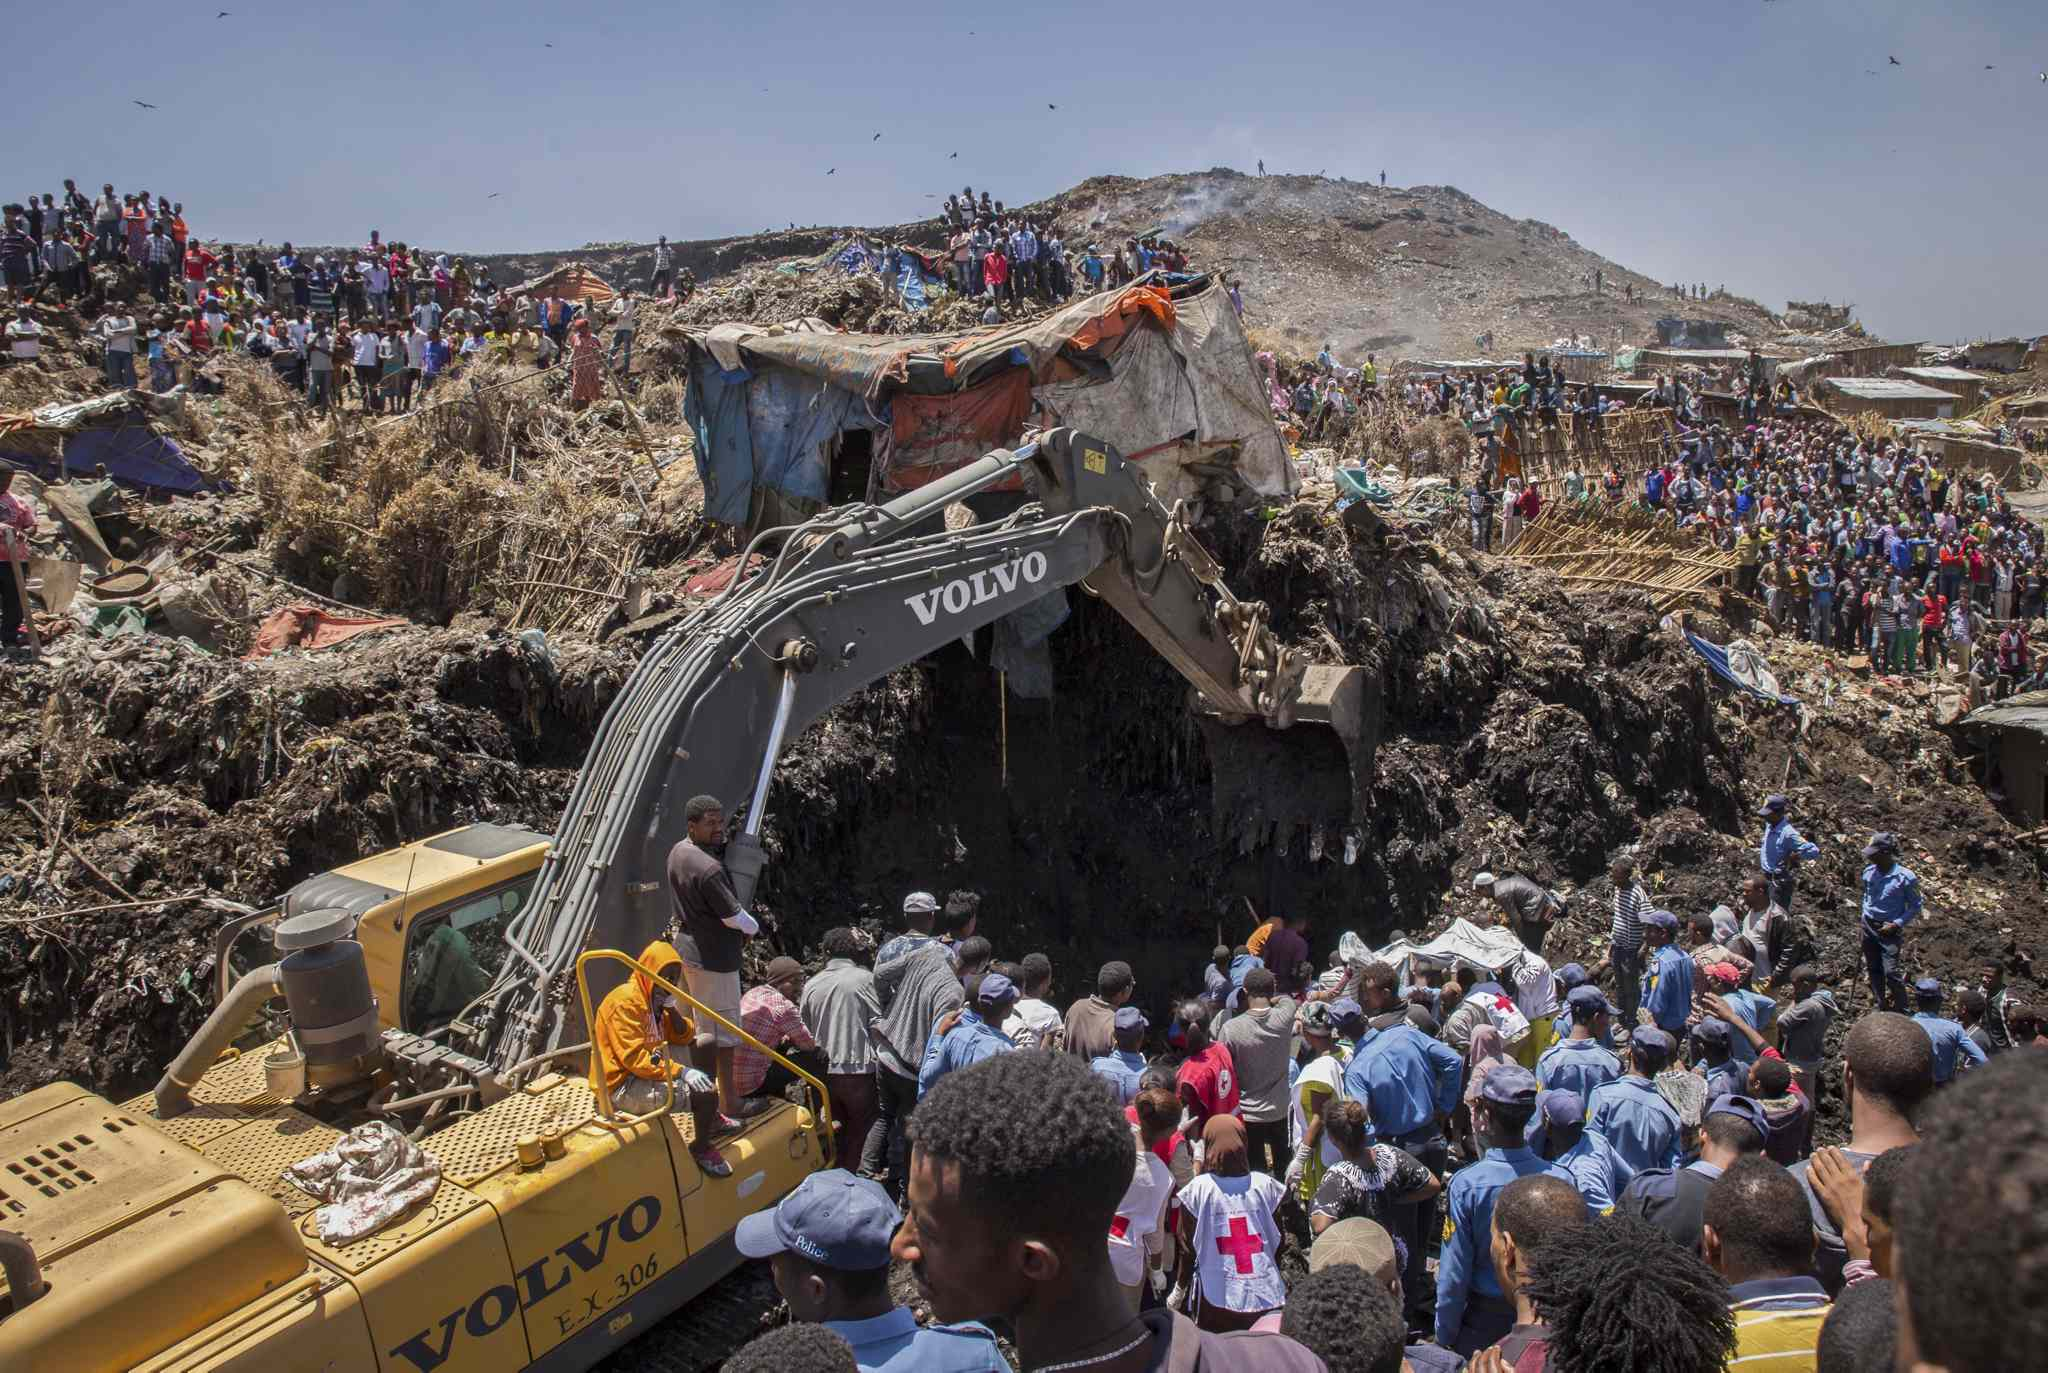 In this Sunday, March 12, 2017 photo, rescuers work at the scene of a garbage landslide, on the outskirts of the capital Addis Ababa, in Ethiopia. A mountain of trash gave way in a massive garbage dump on the outskirts of Ethiopia's capital, killing dozens and leaving more missing, residents said.